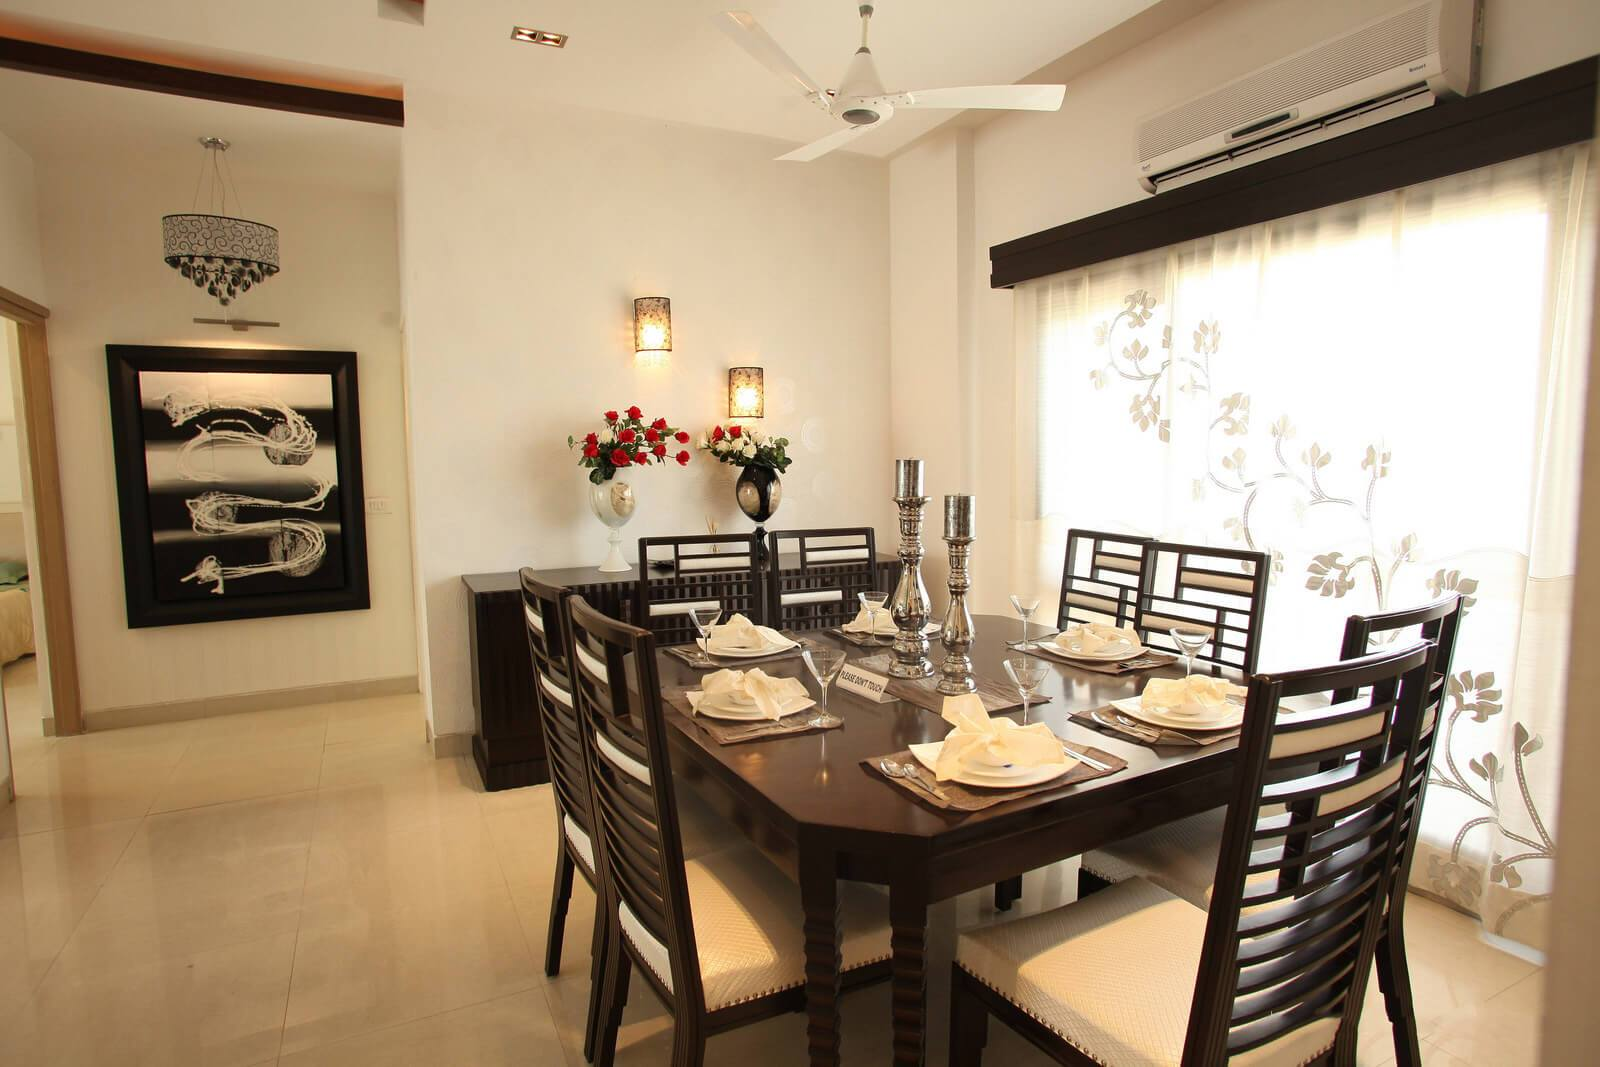 rps savana dining room in sector 88, faridabad haryana